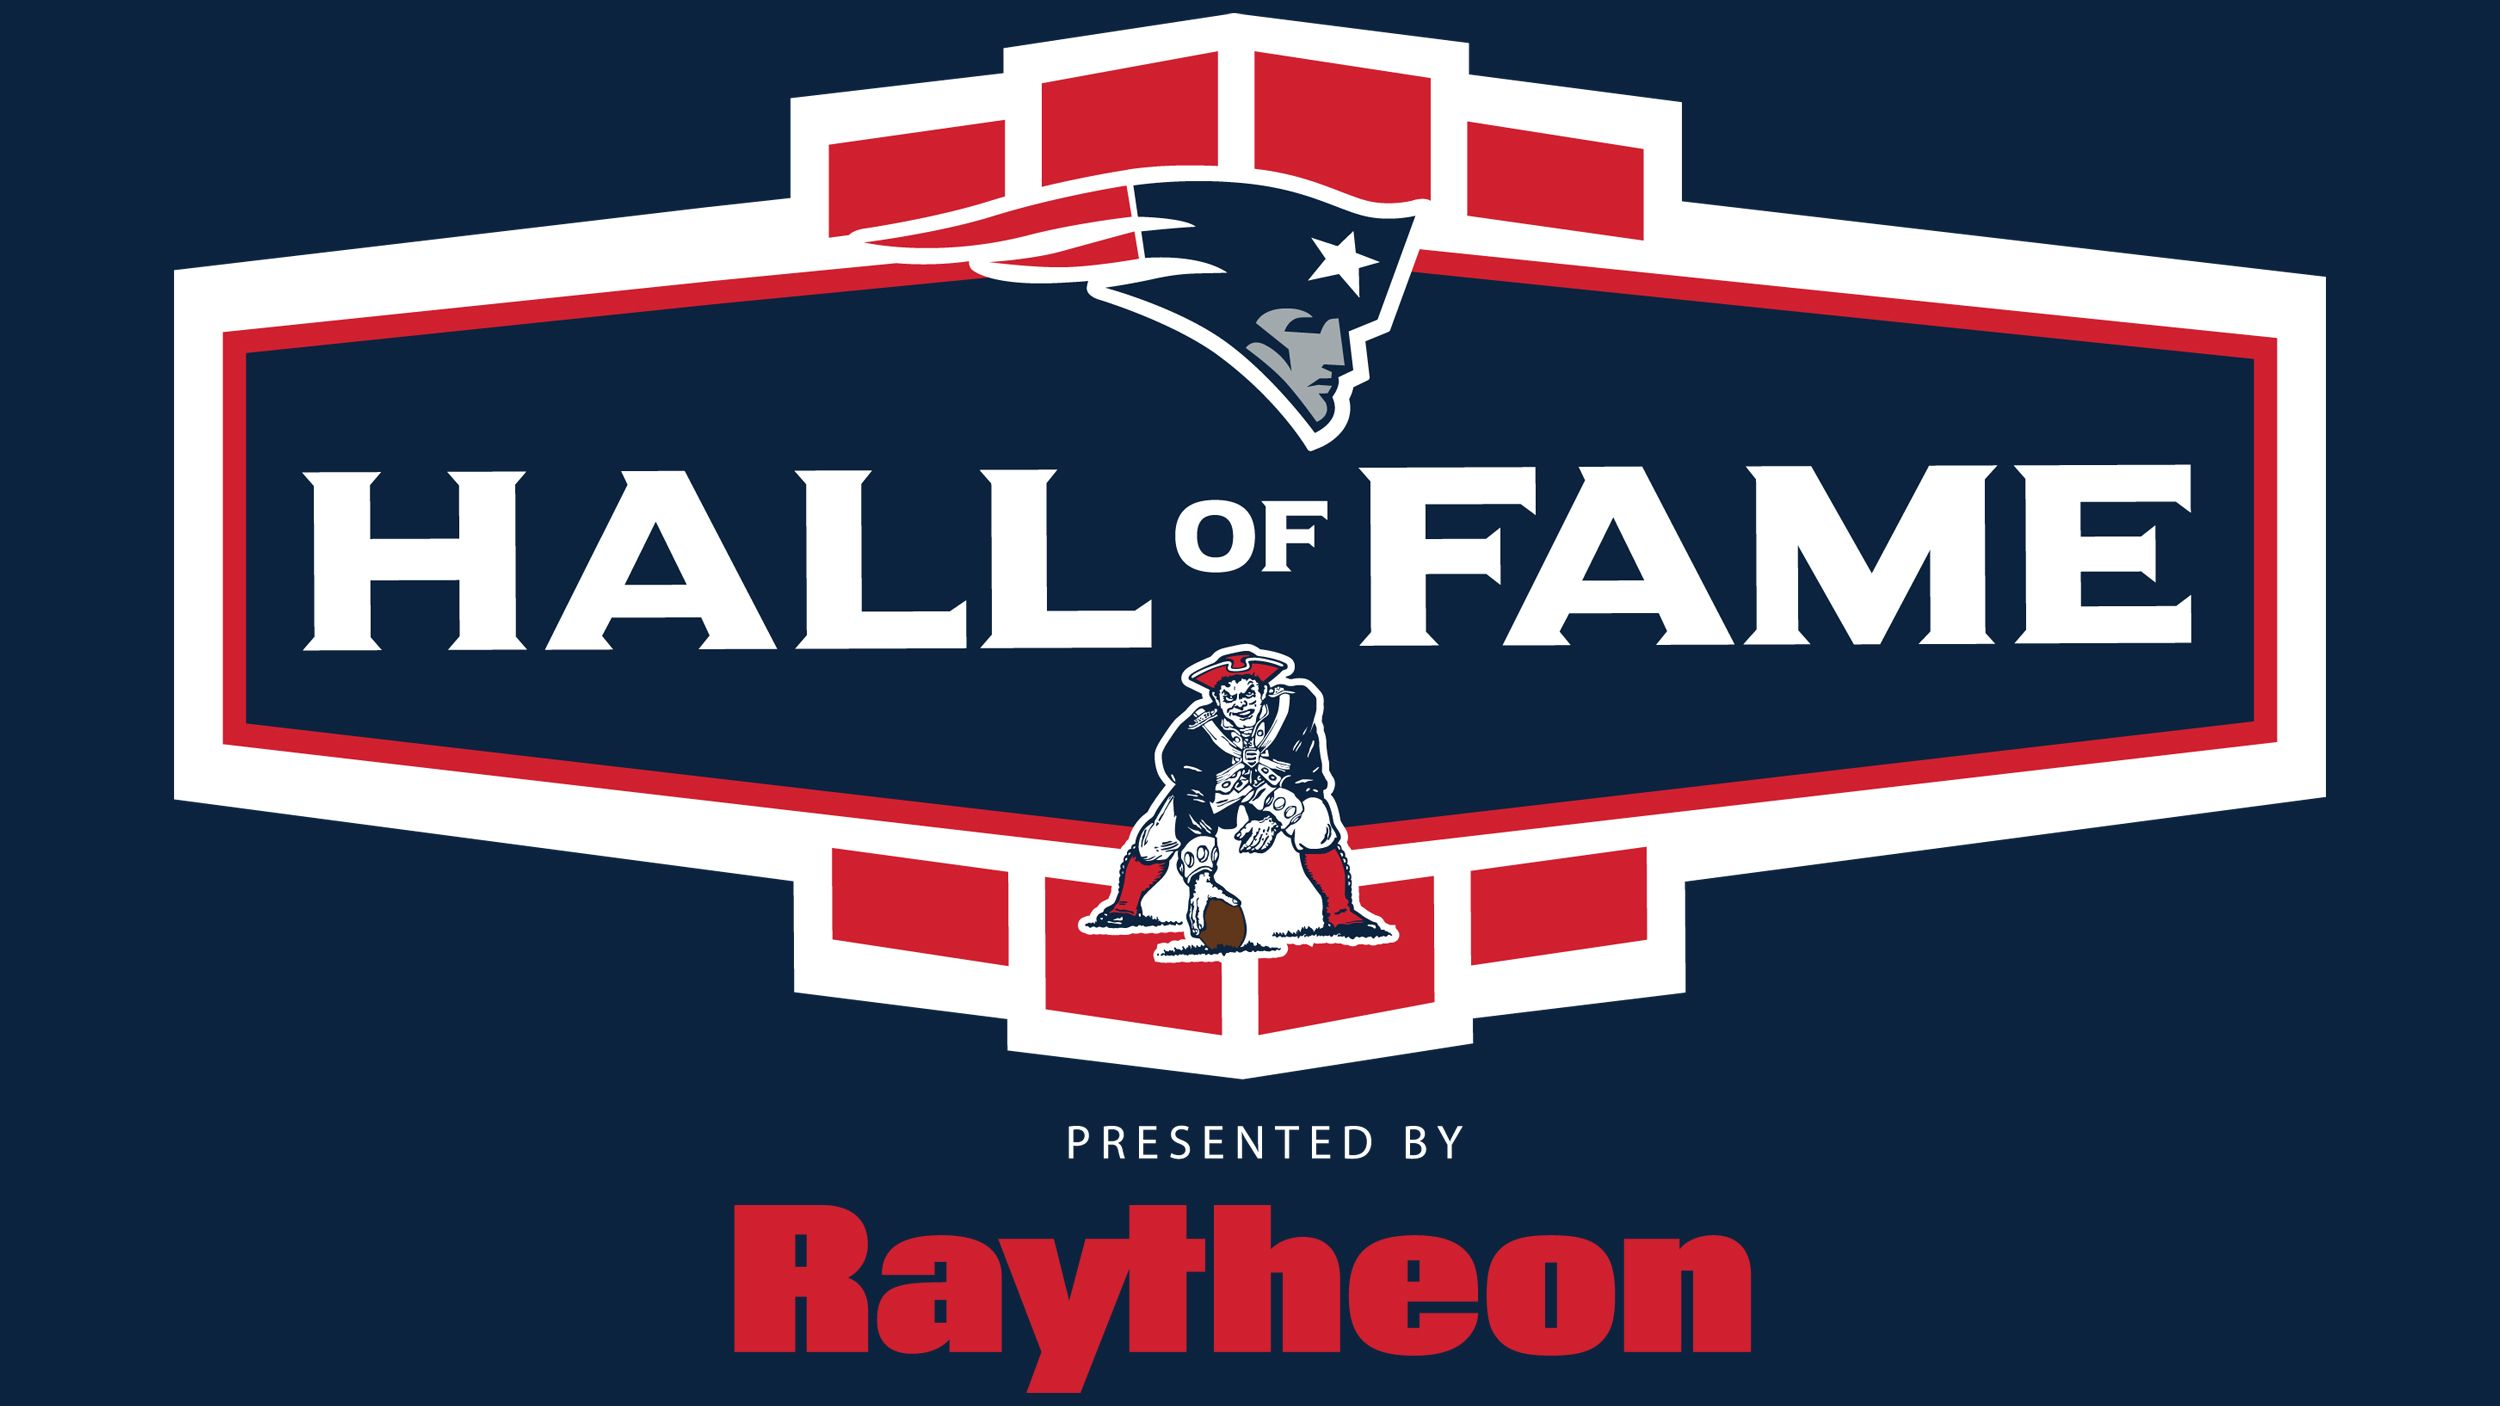 THE PATRIOTS HALL OF FAME PRESENTED BY RAYTHEON